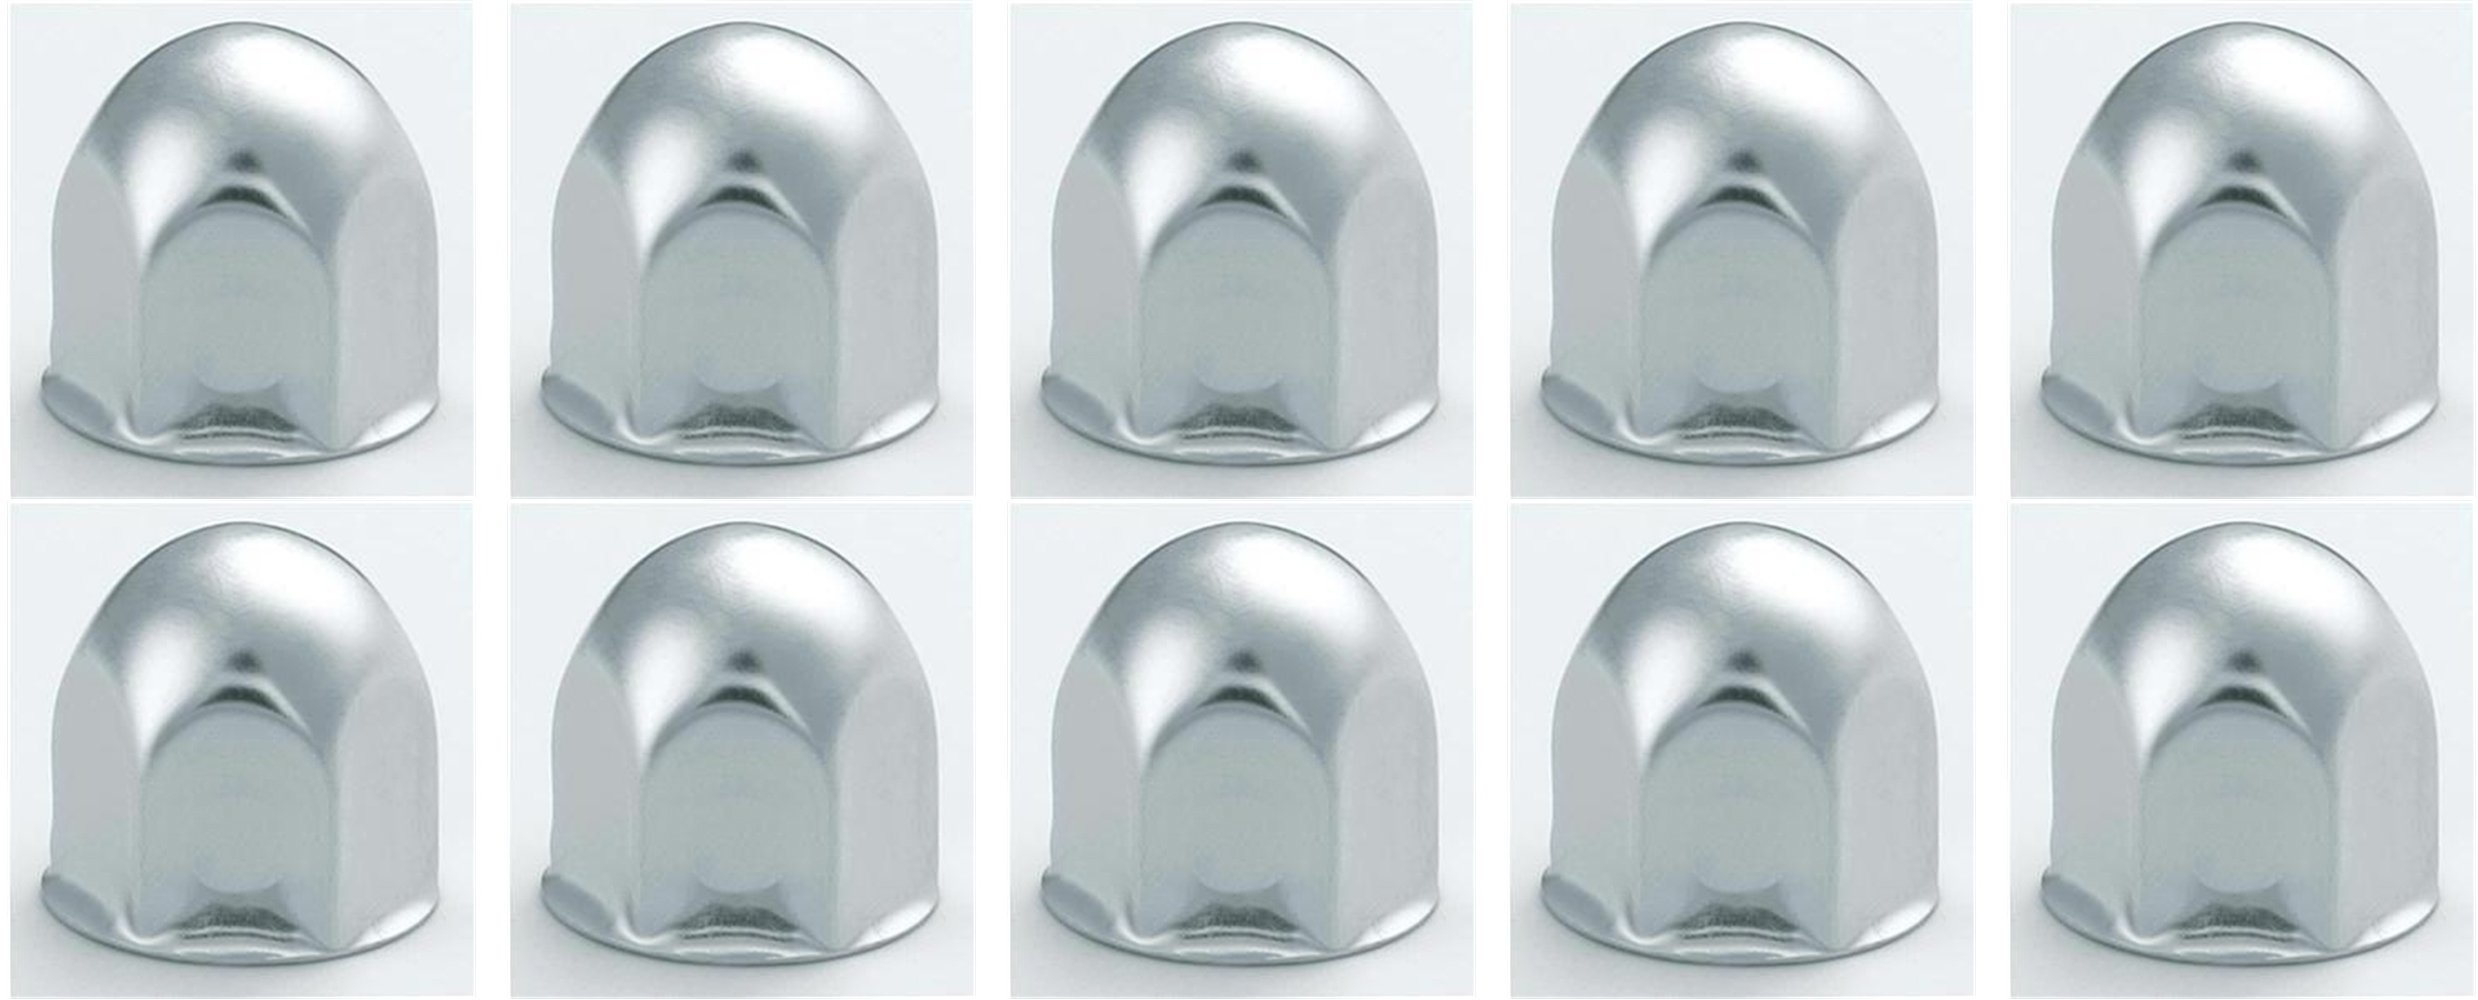 10 Stainless Steel Rounded Lug Nut Covers for 1'' Lug Nuts